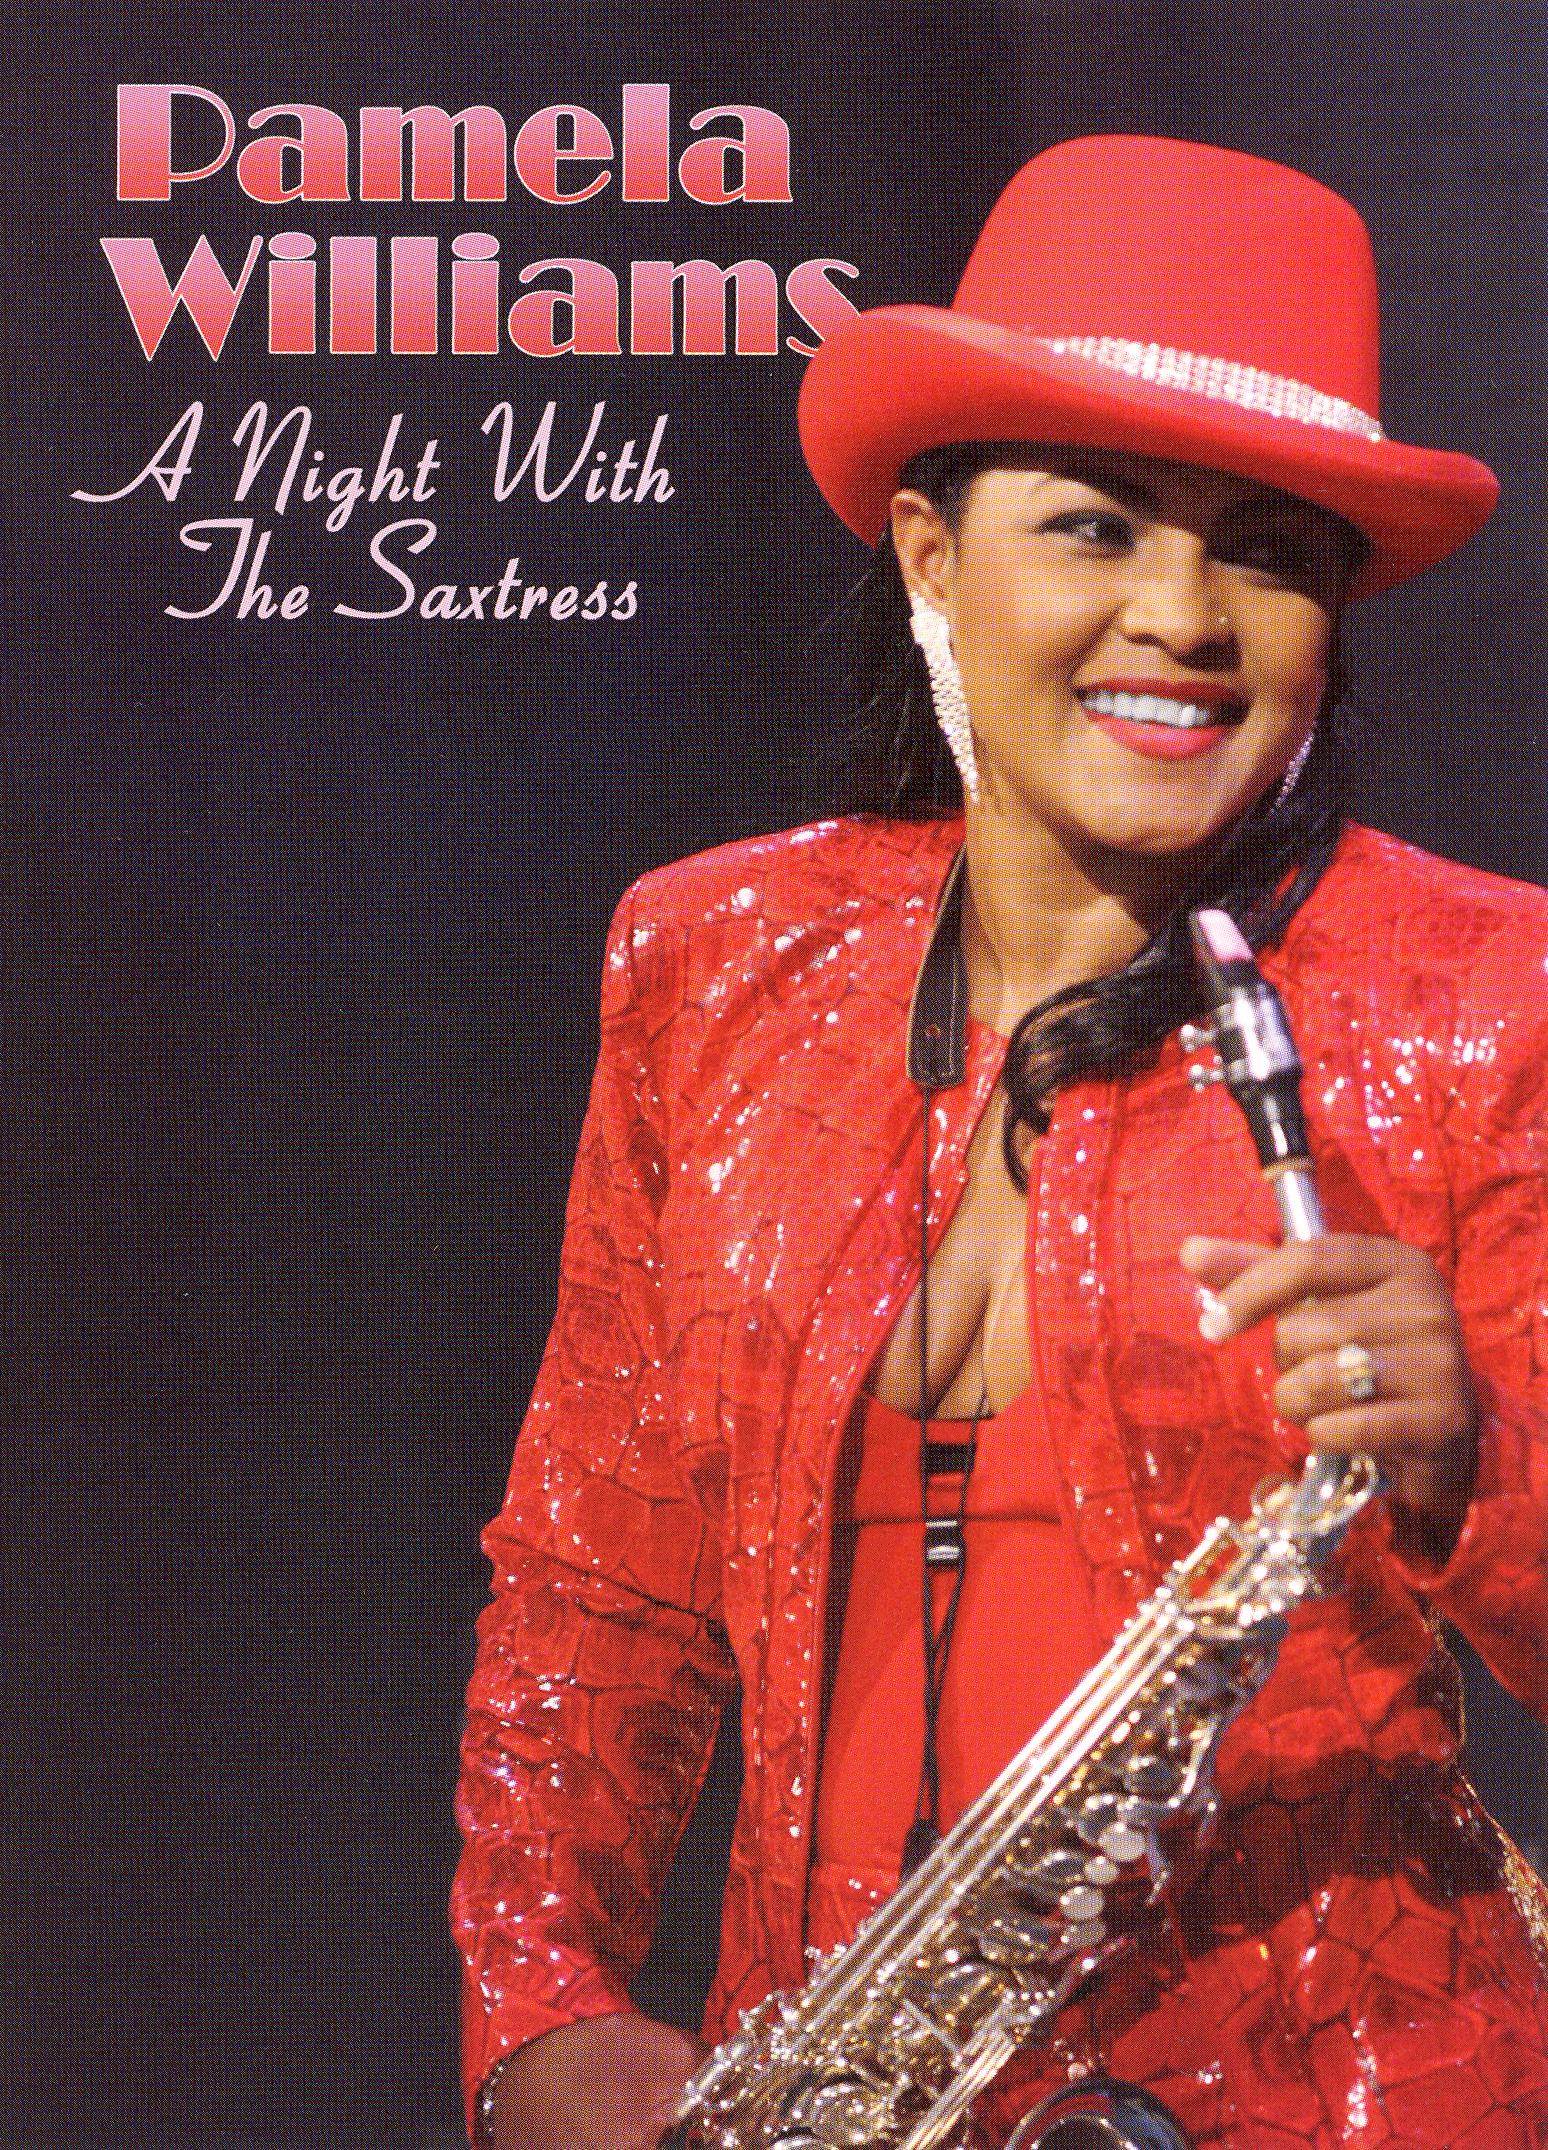 Pamela Williams: A Night with the Saxtress